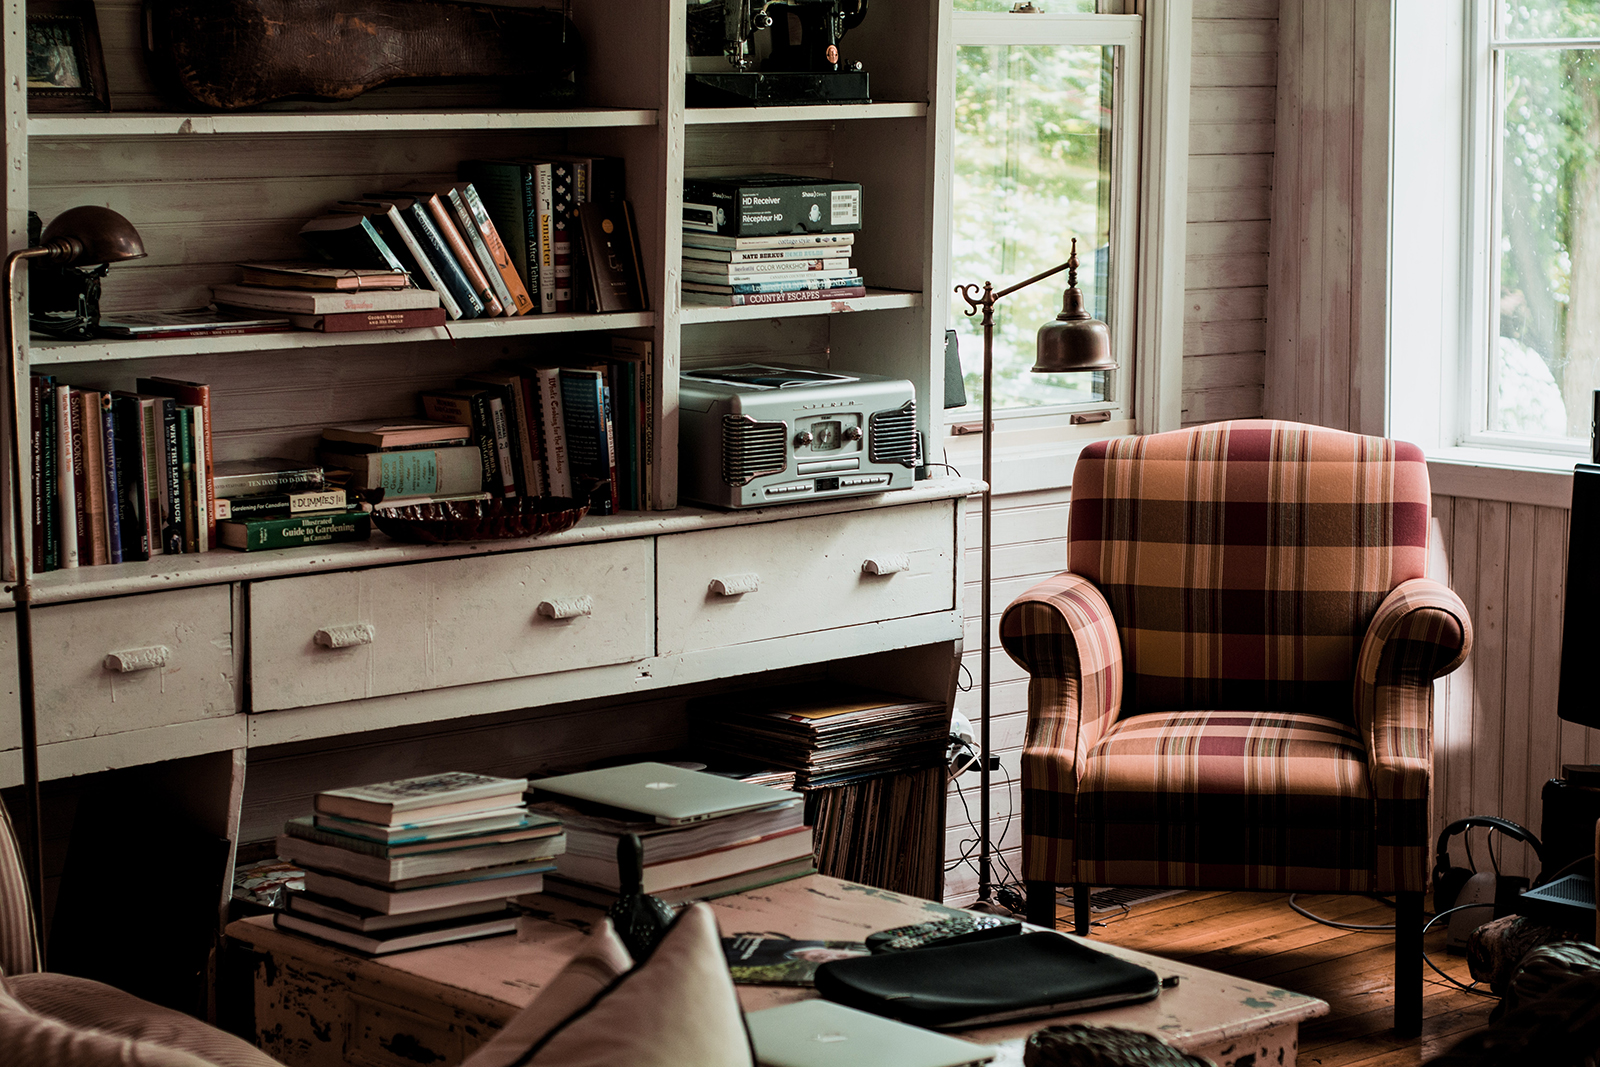 3 Reasons Your Home Has a Clutter Problem (and How to Solve It!)